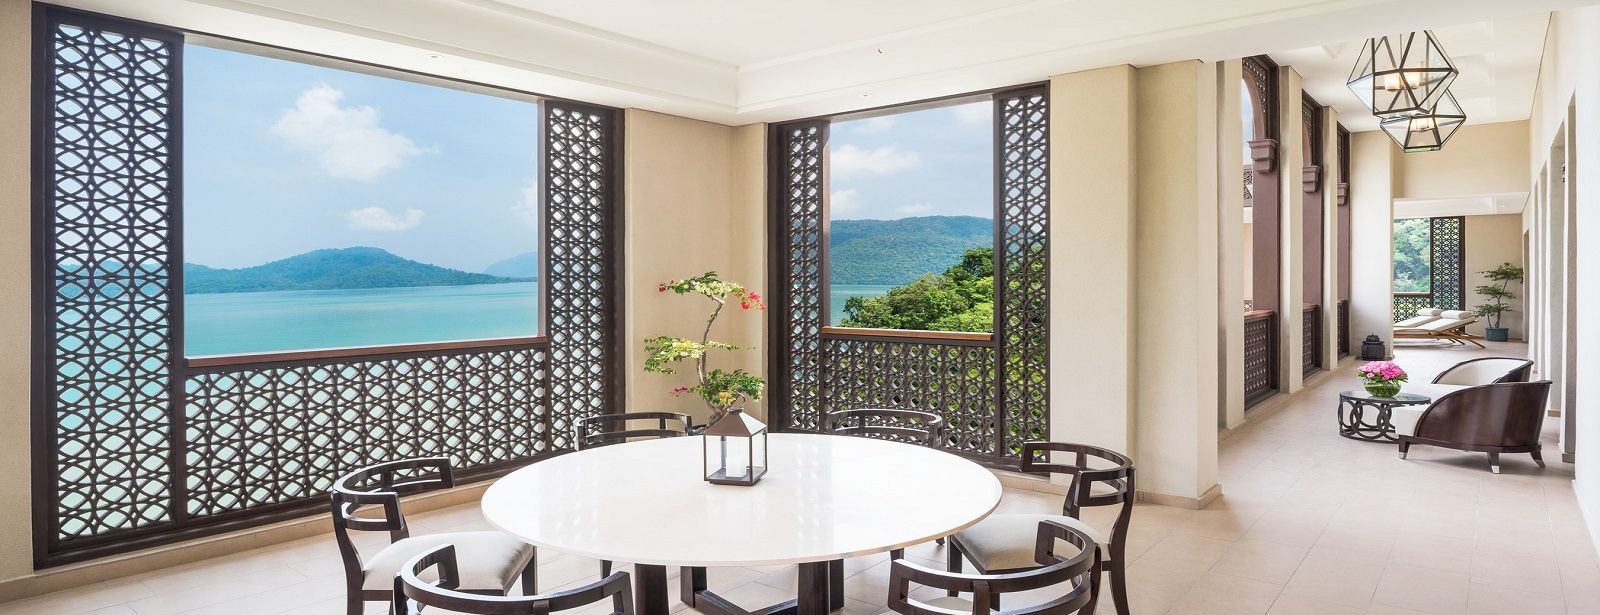 Presidential Suite | The St. Regis Langkawi